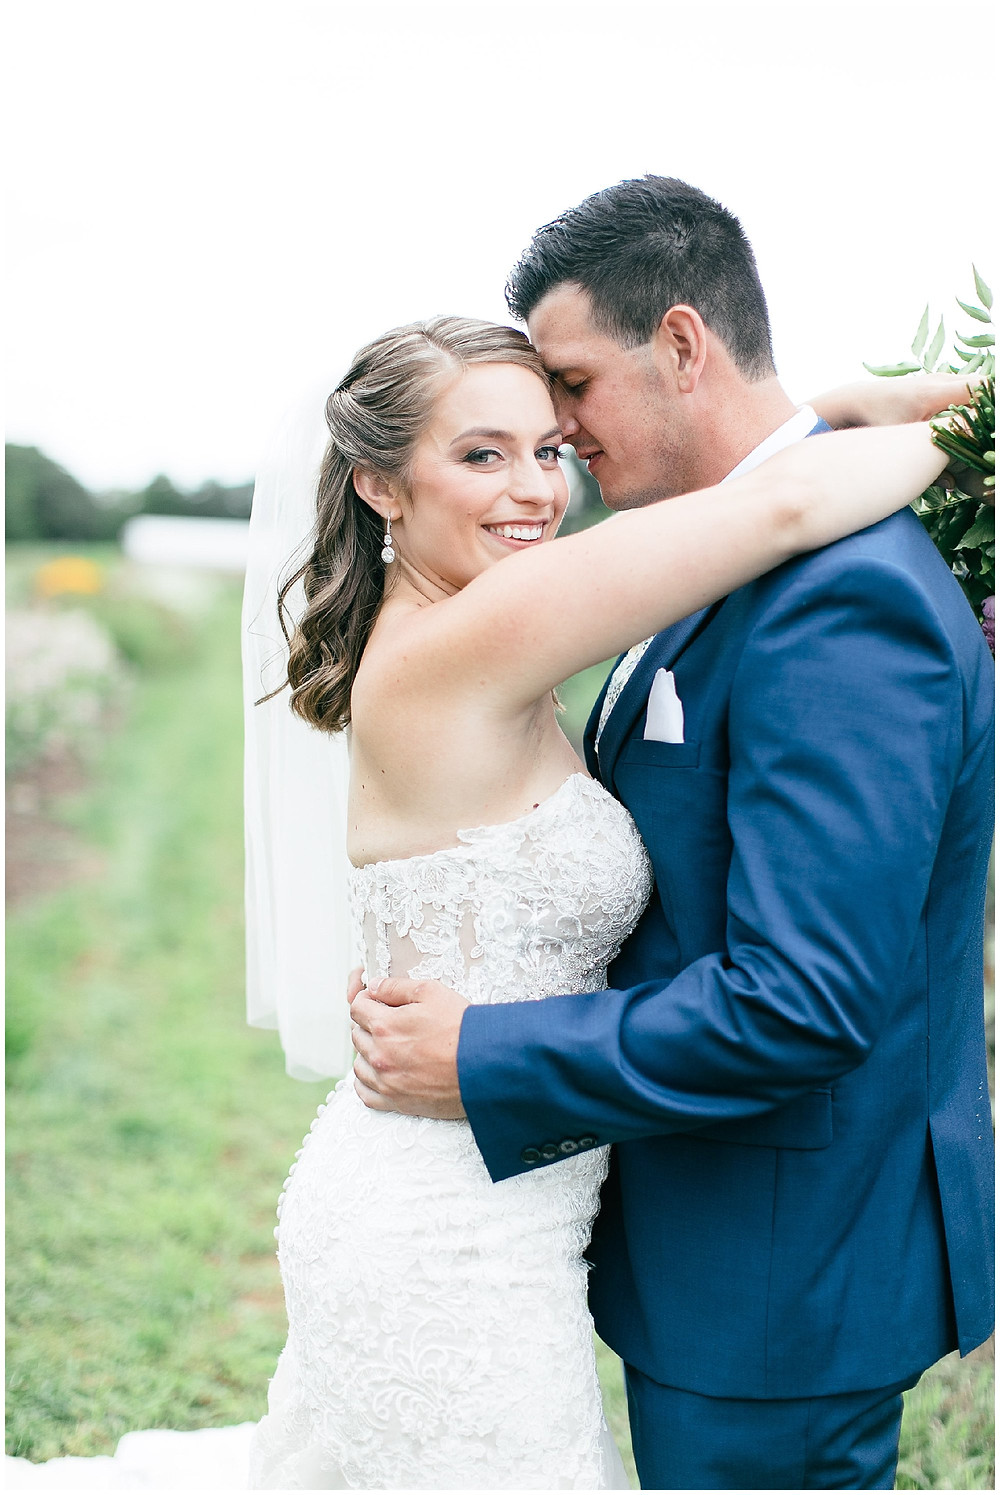 bride and groom portrait in a field of flowers makes for a romantic image